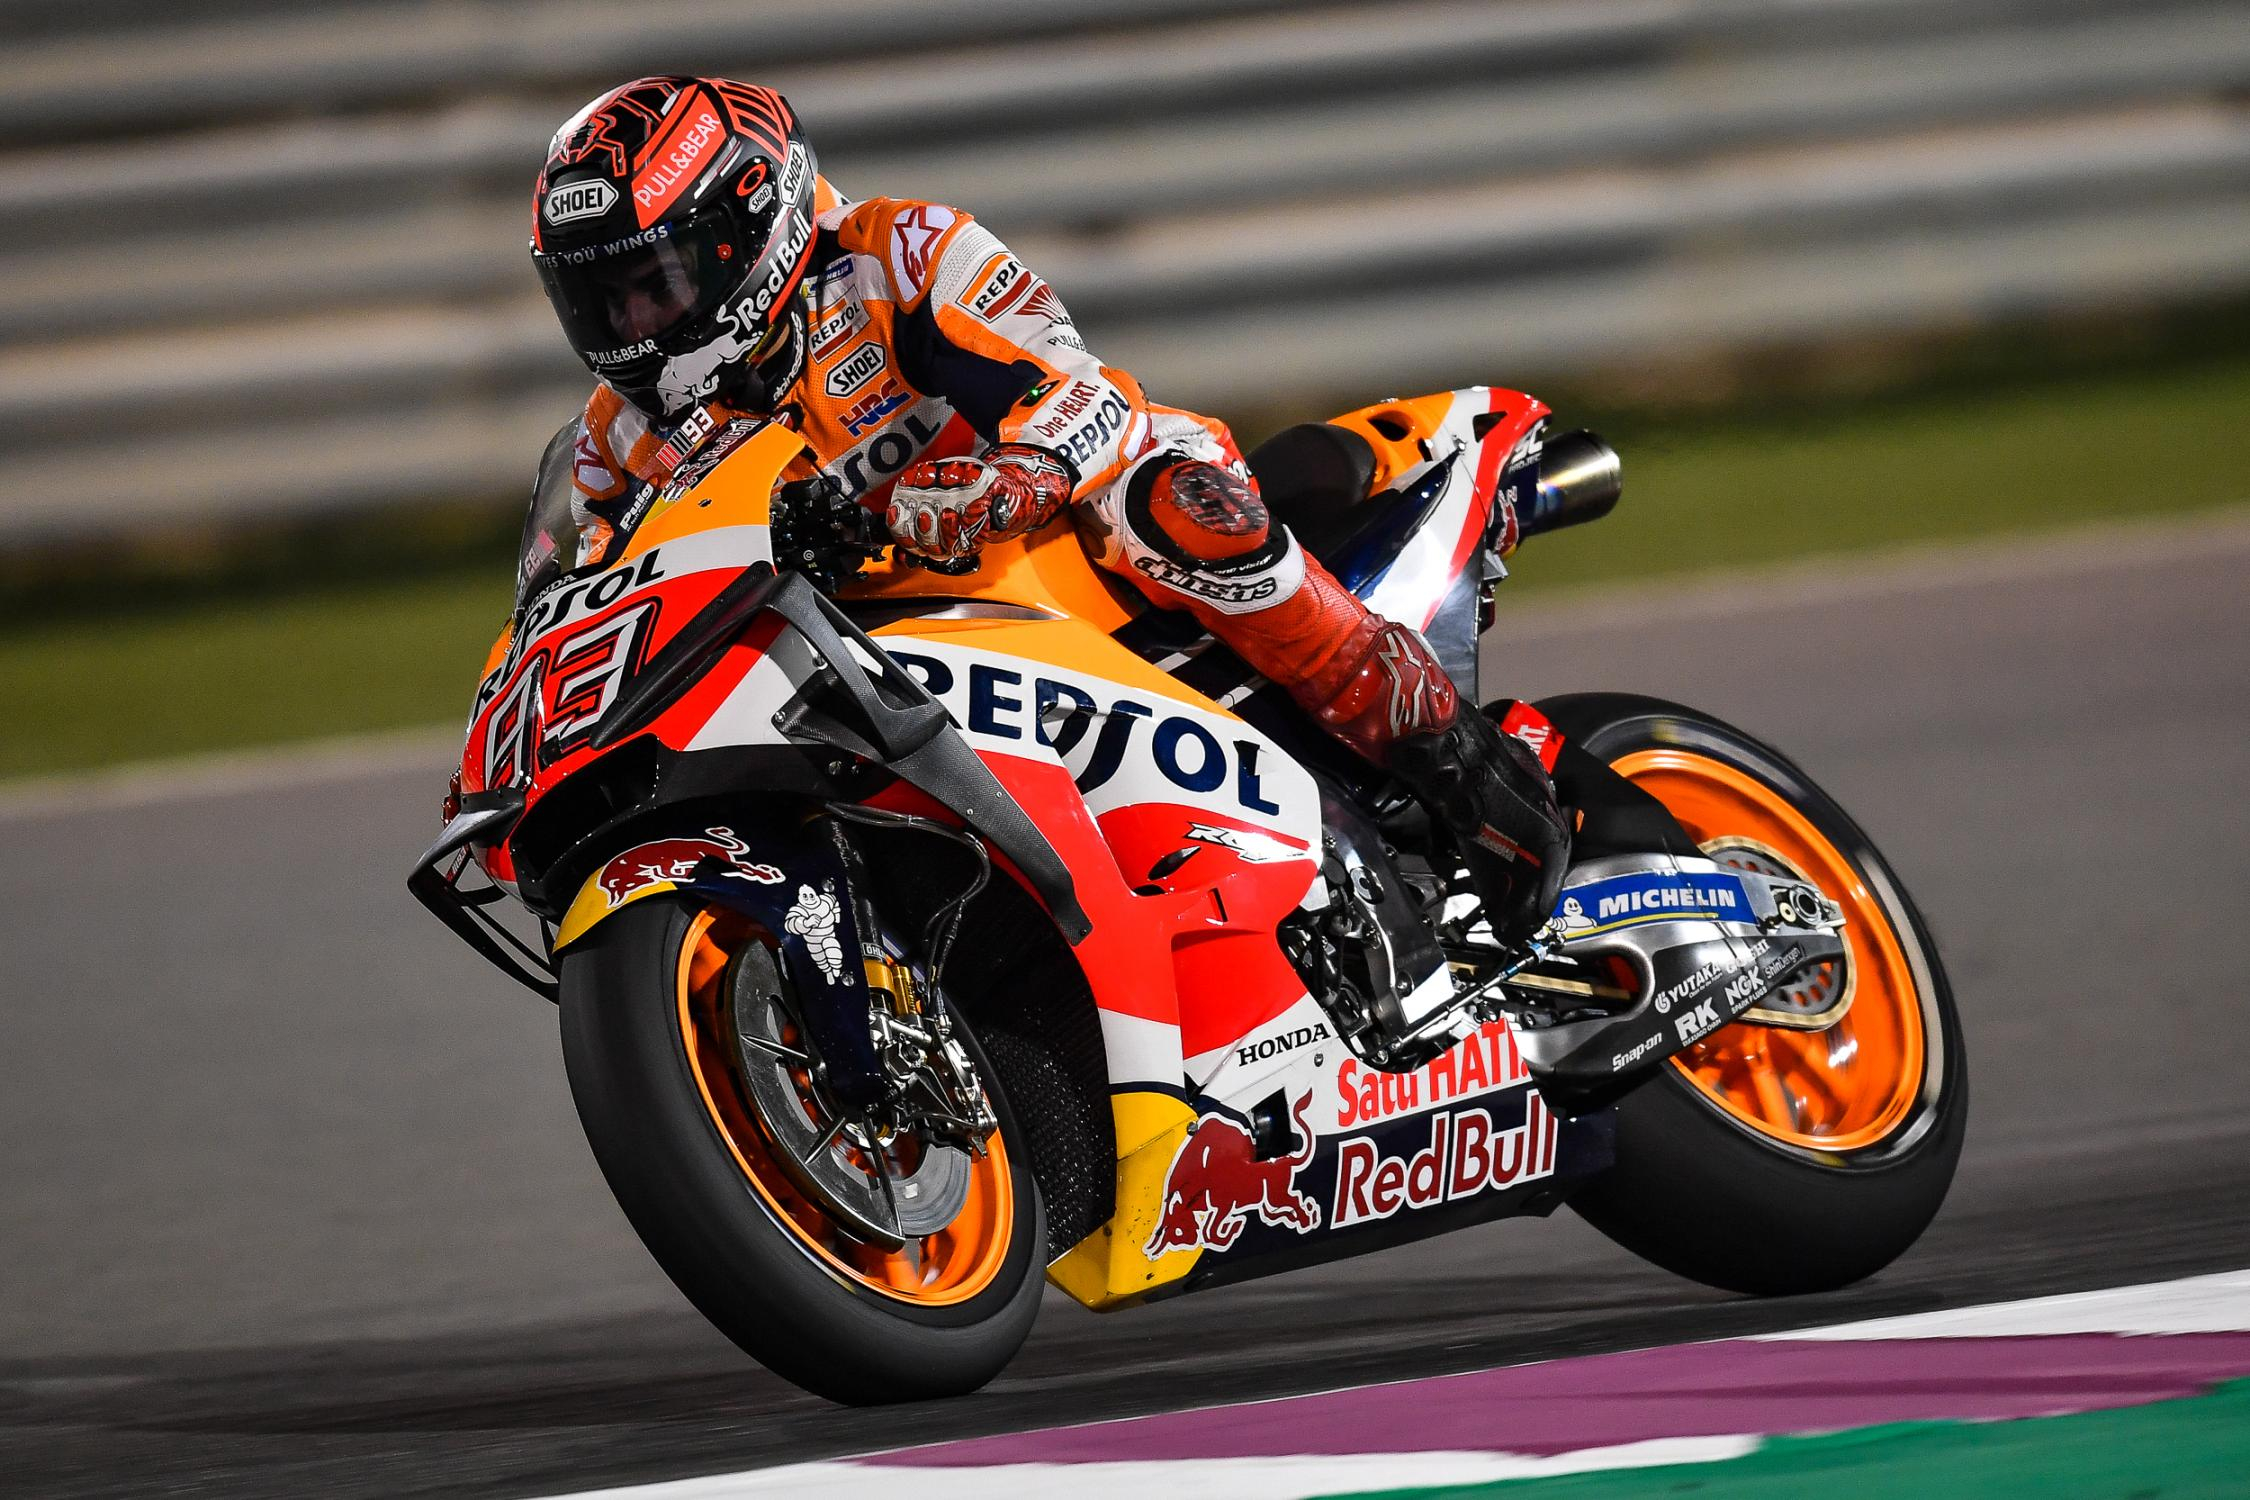 93-marc-marquez-esplg5_4074.gallery_full_top_fullscreen.jpg